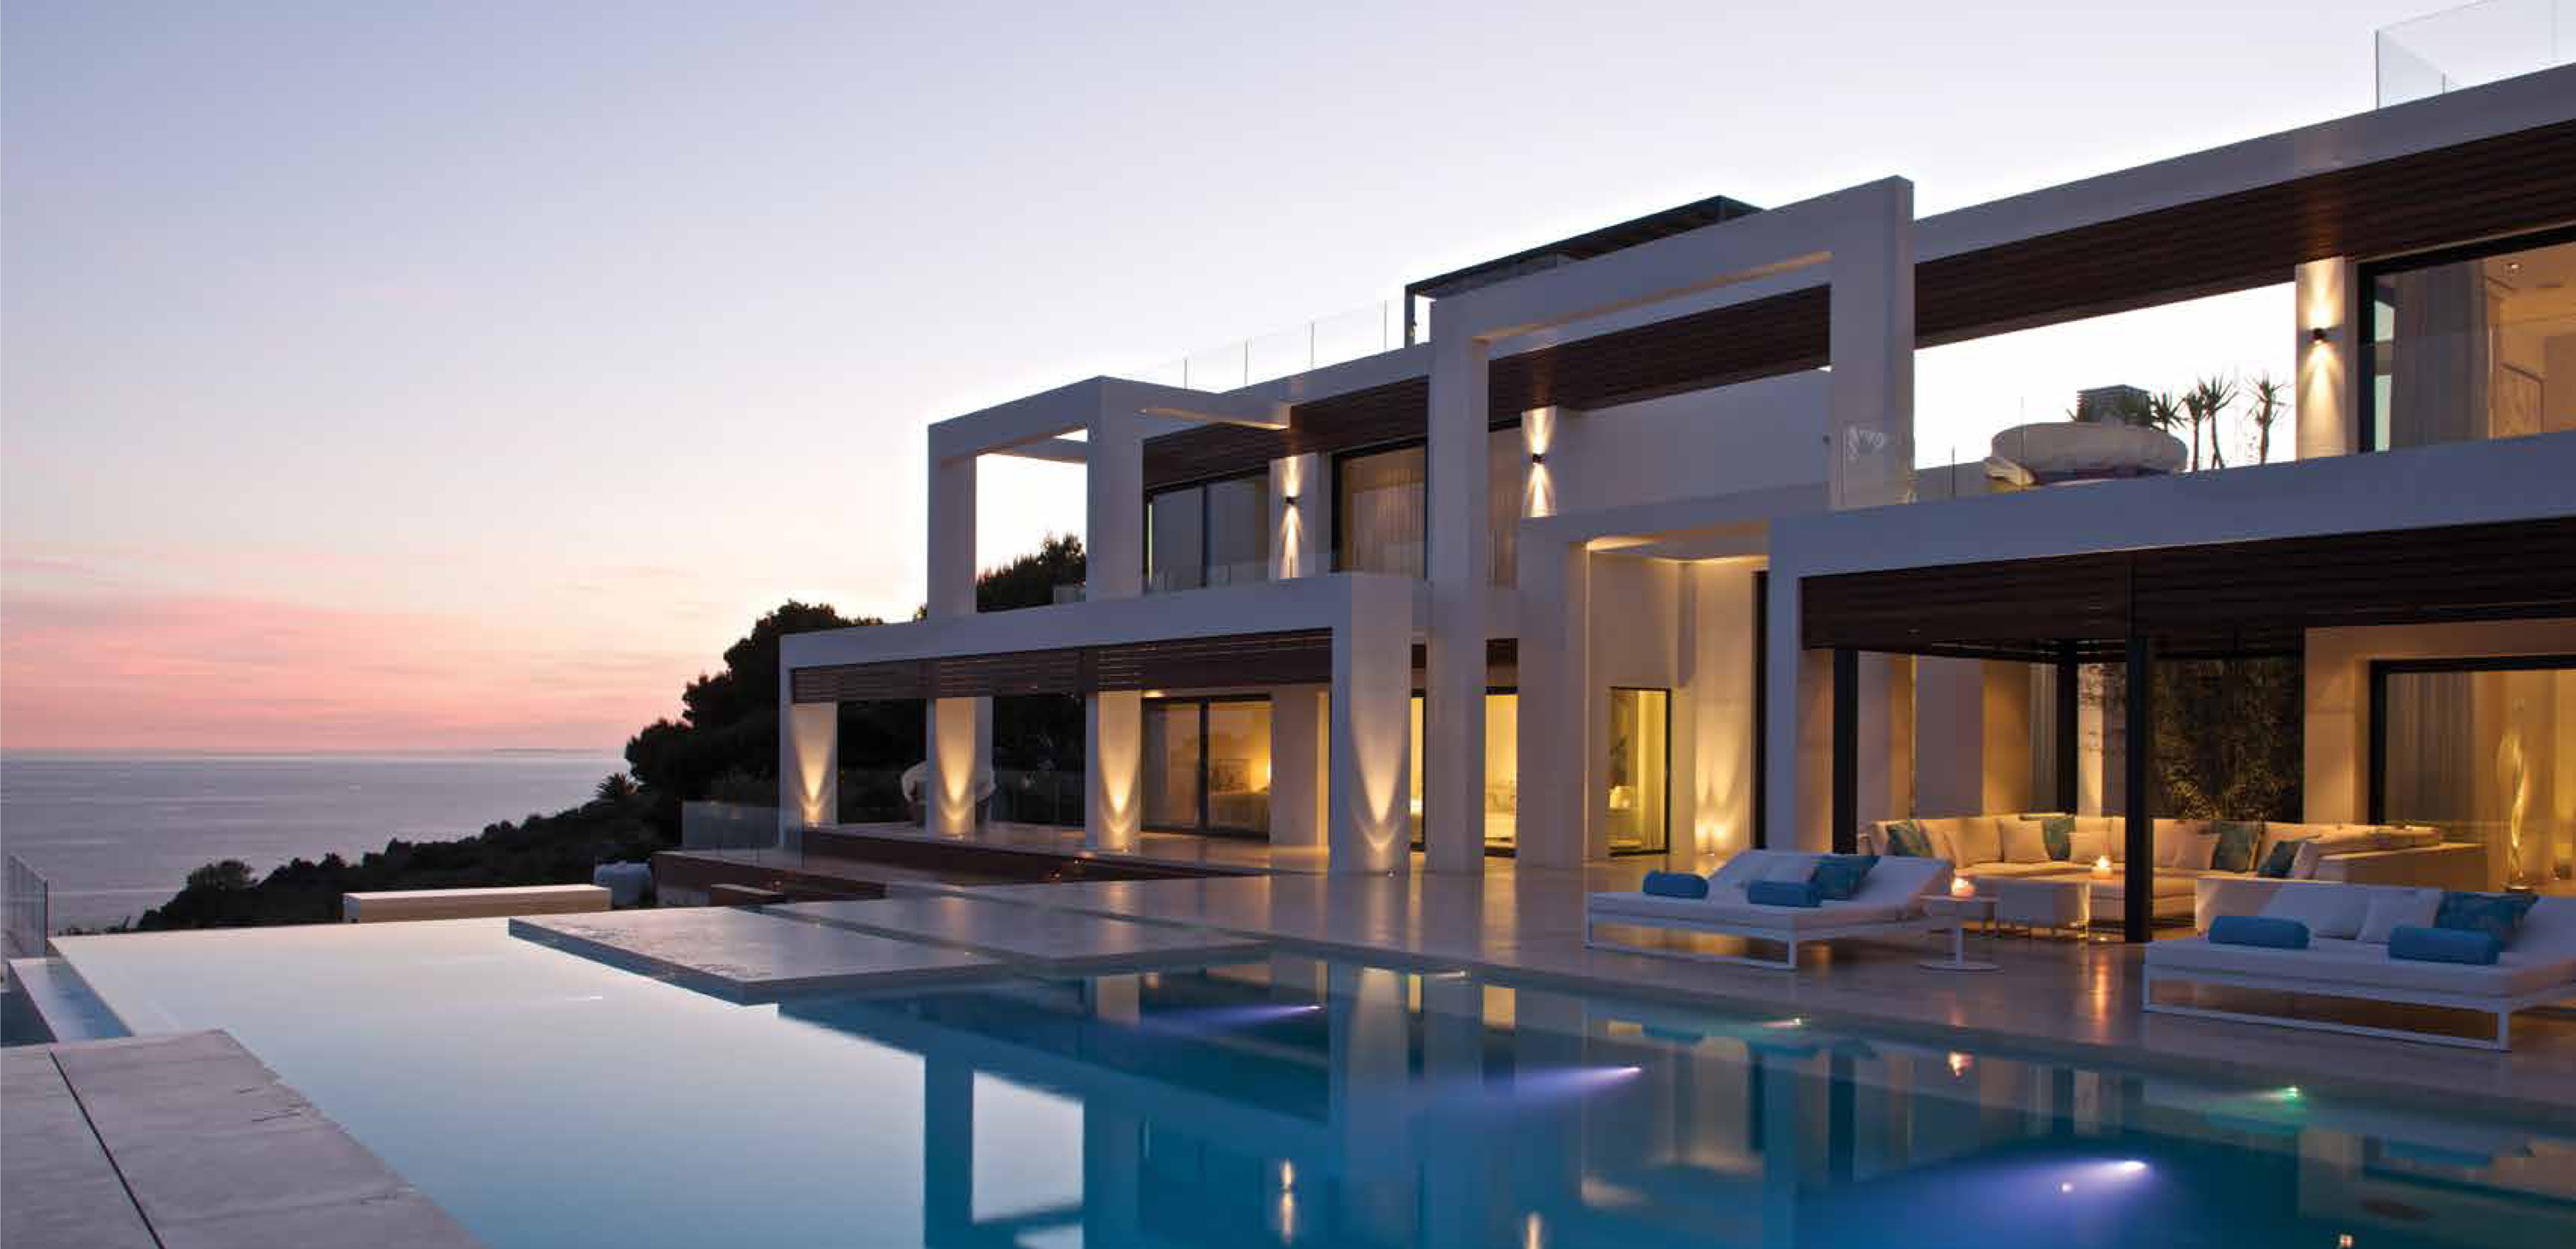 Casades S Furnishes The Impressive Andratx House In Mallorca  # Rugiano Muebles